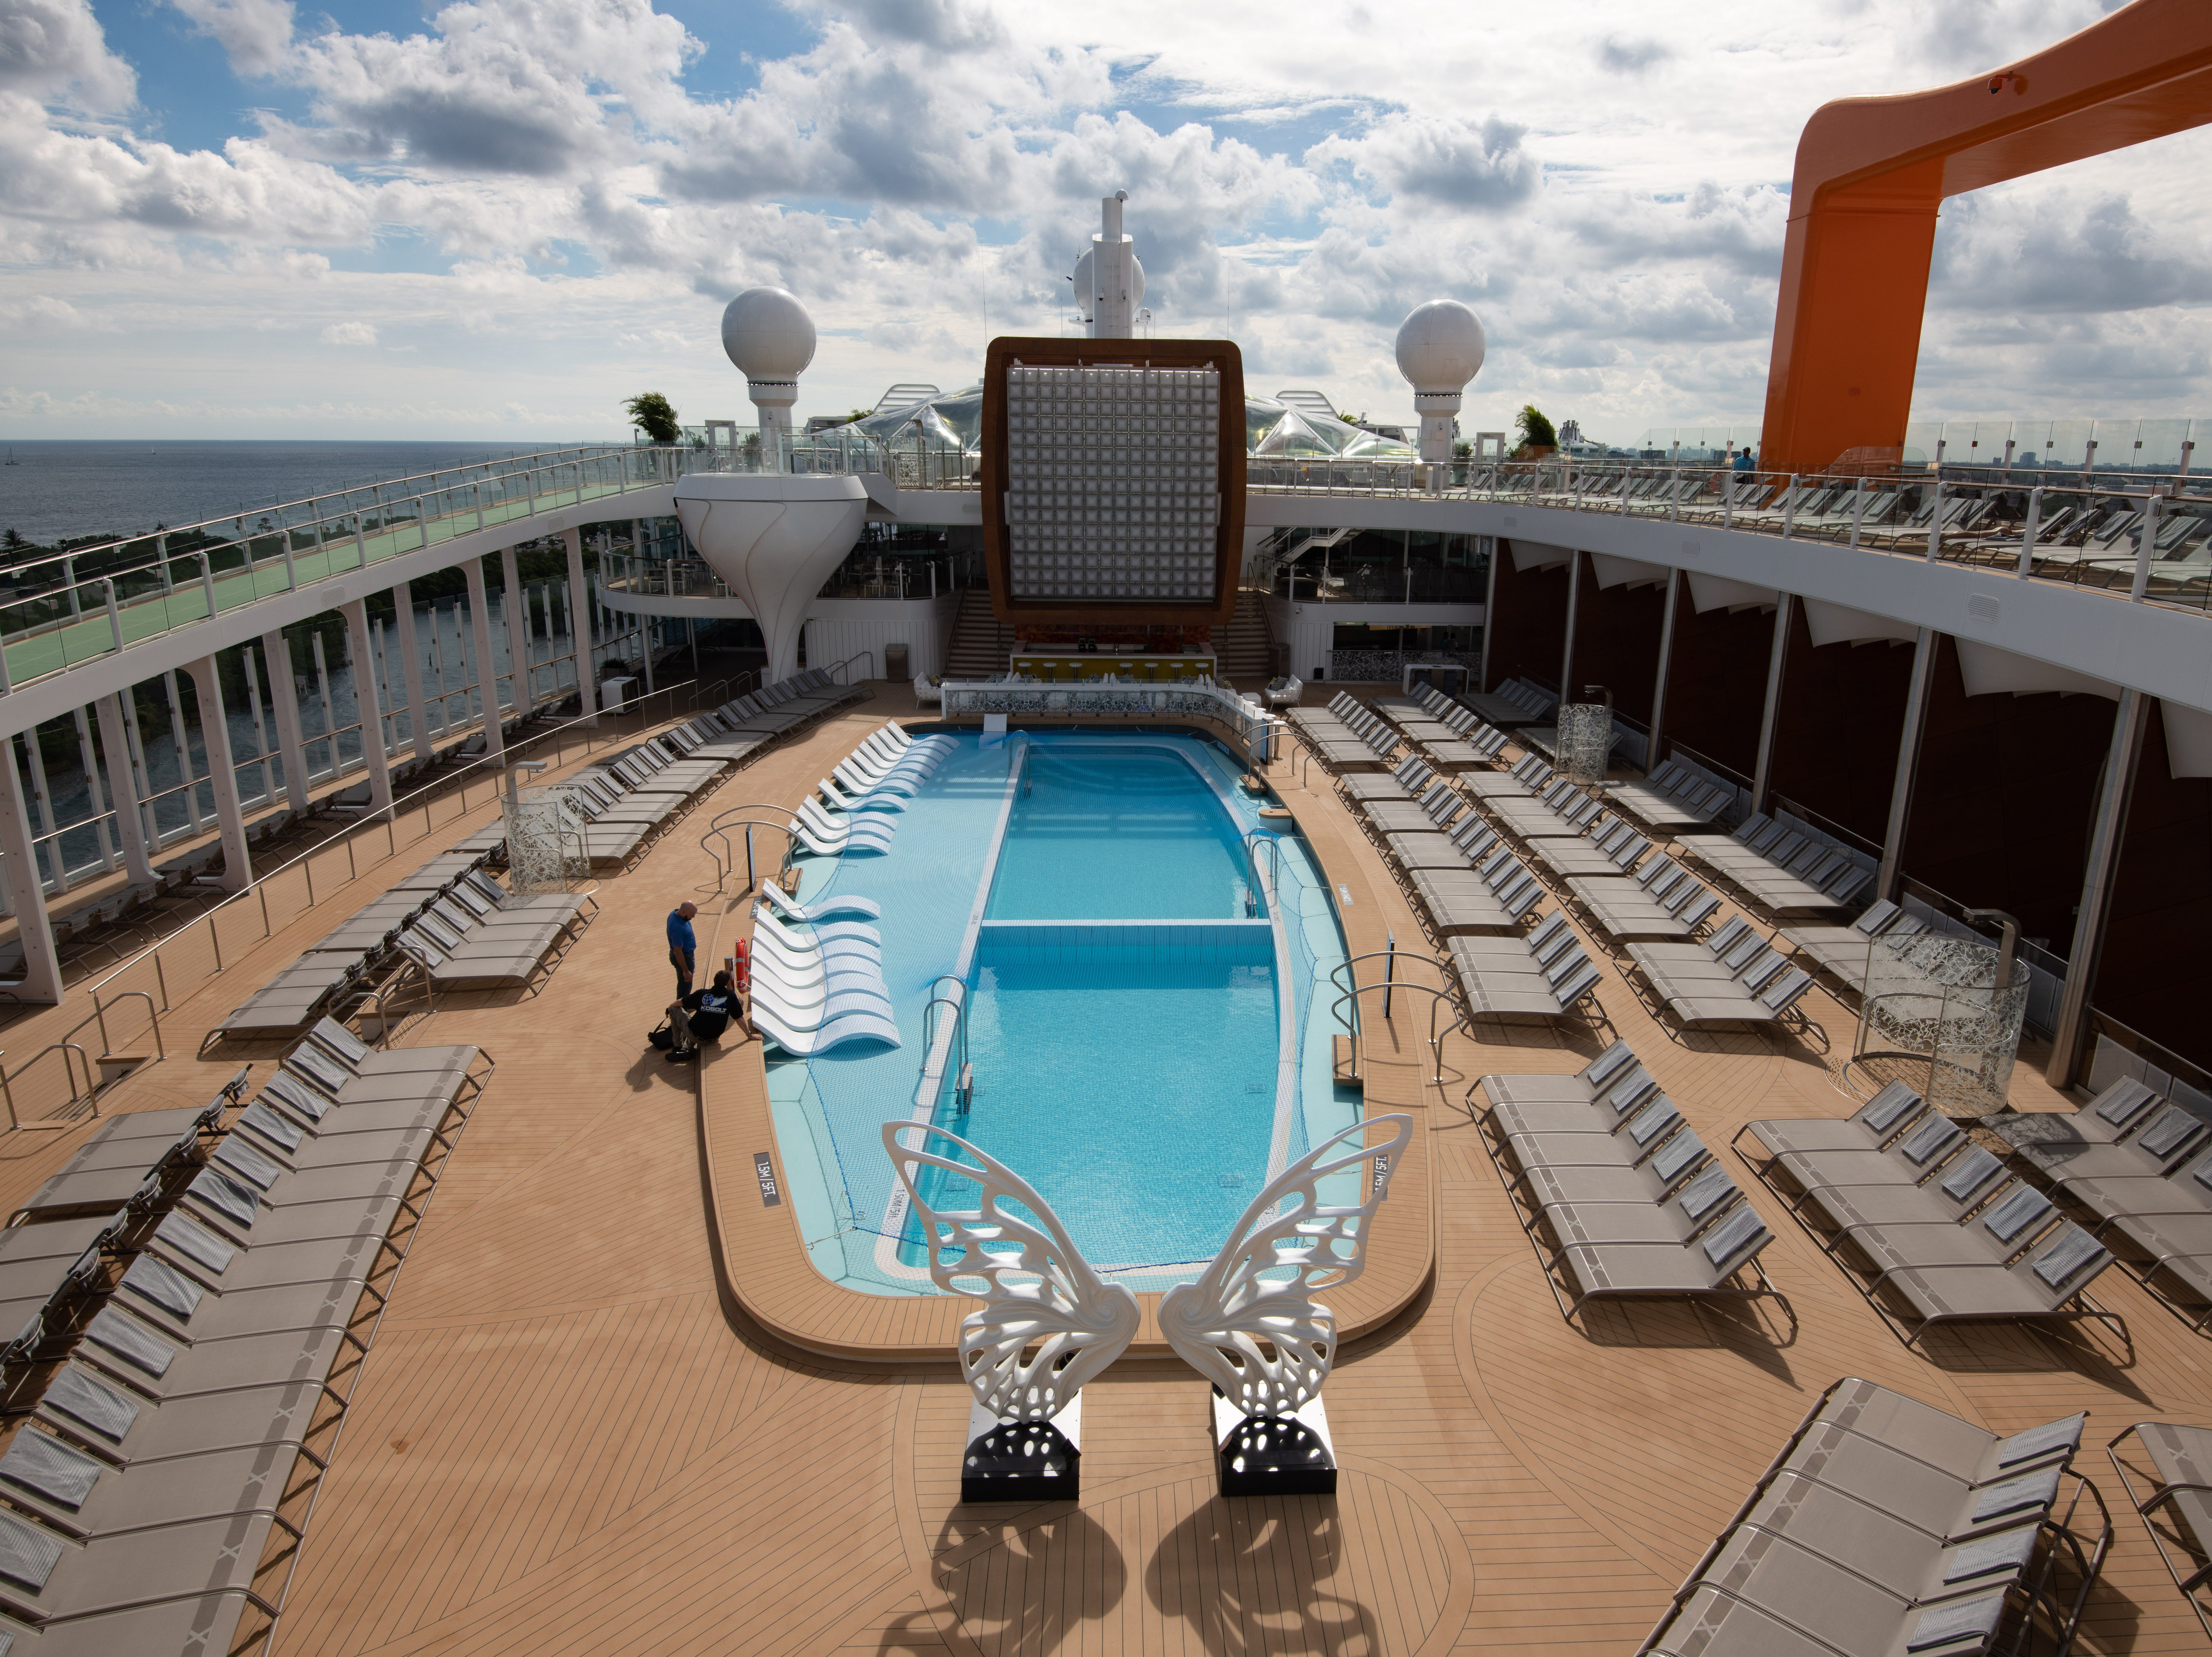 The focal point of the exterior decks of Celebrity Edge is its Pool Deck, which features a non-traditional, asymmetrical pool.